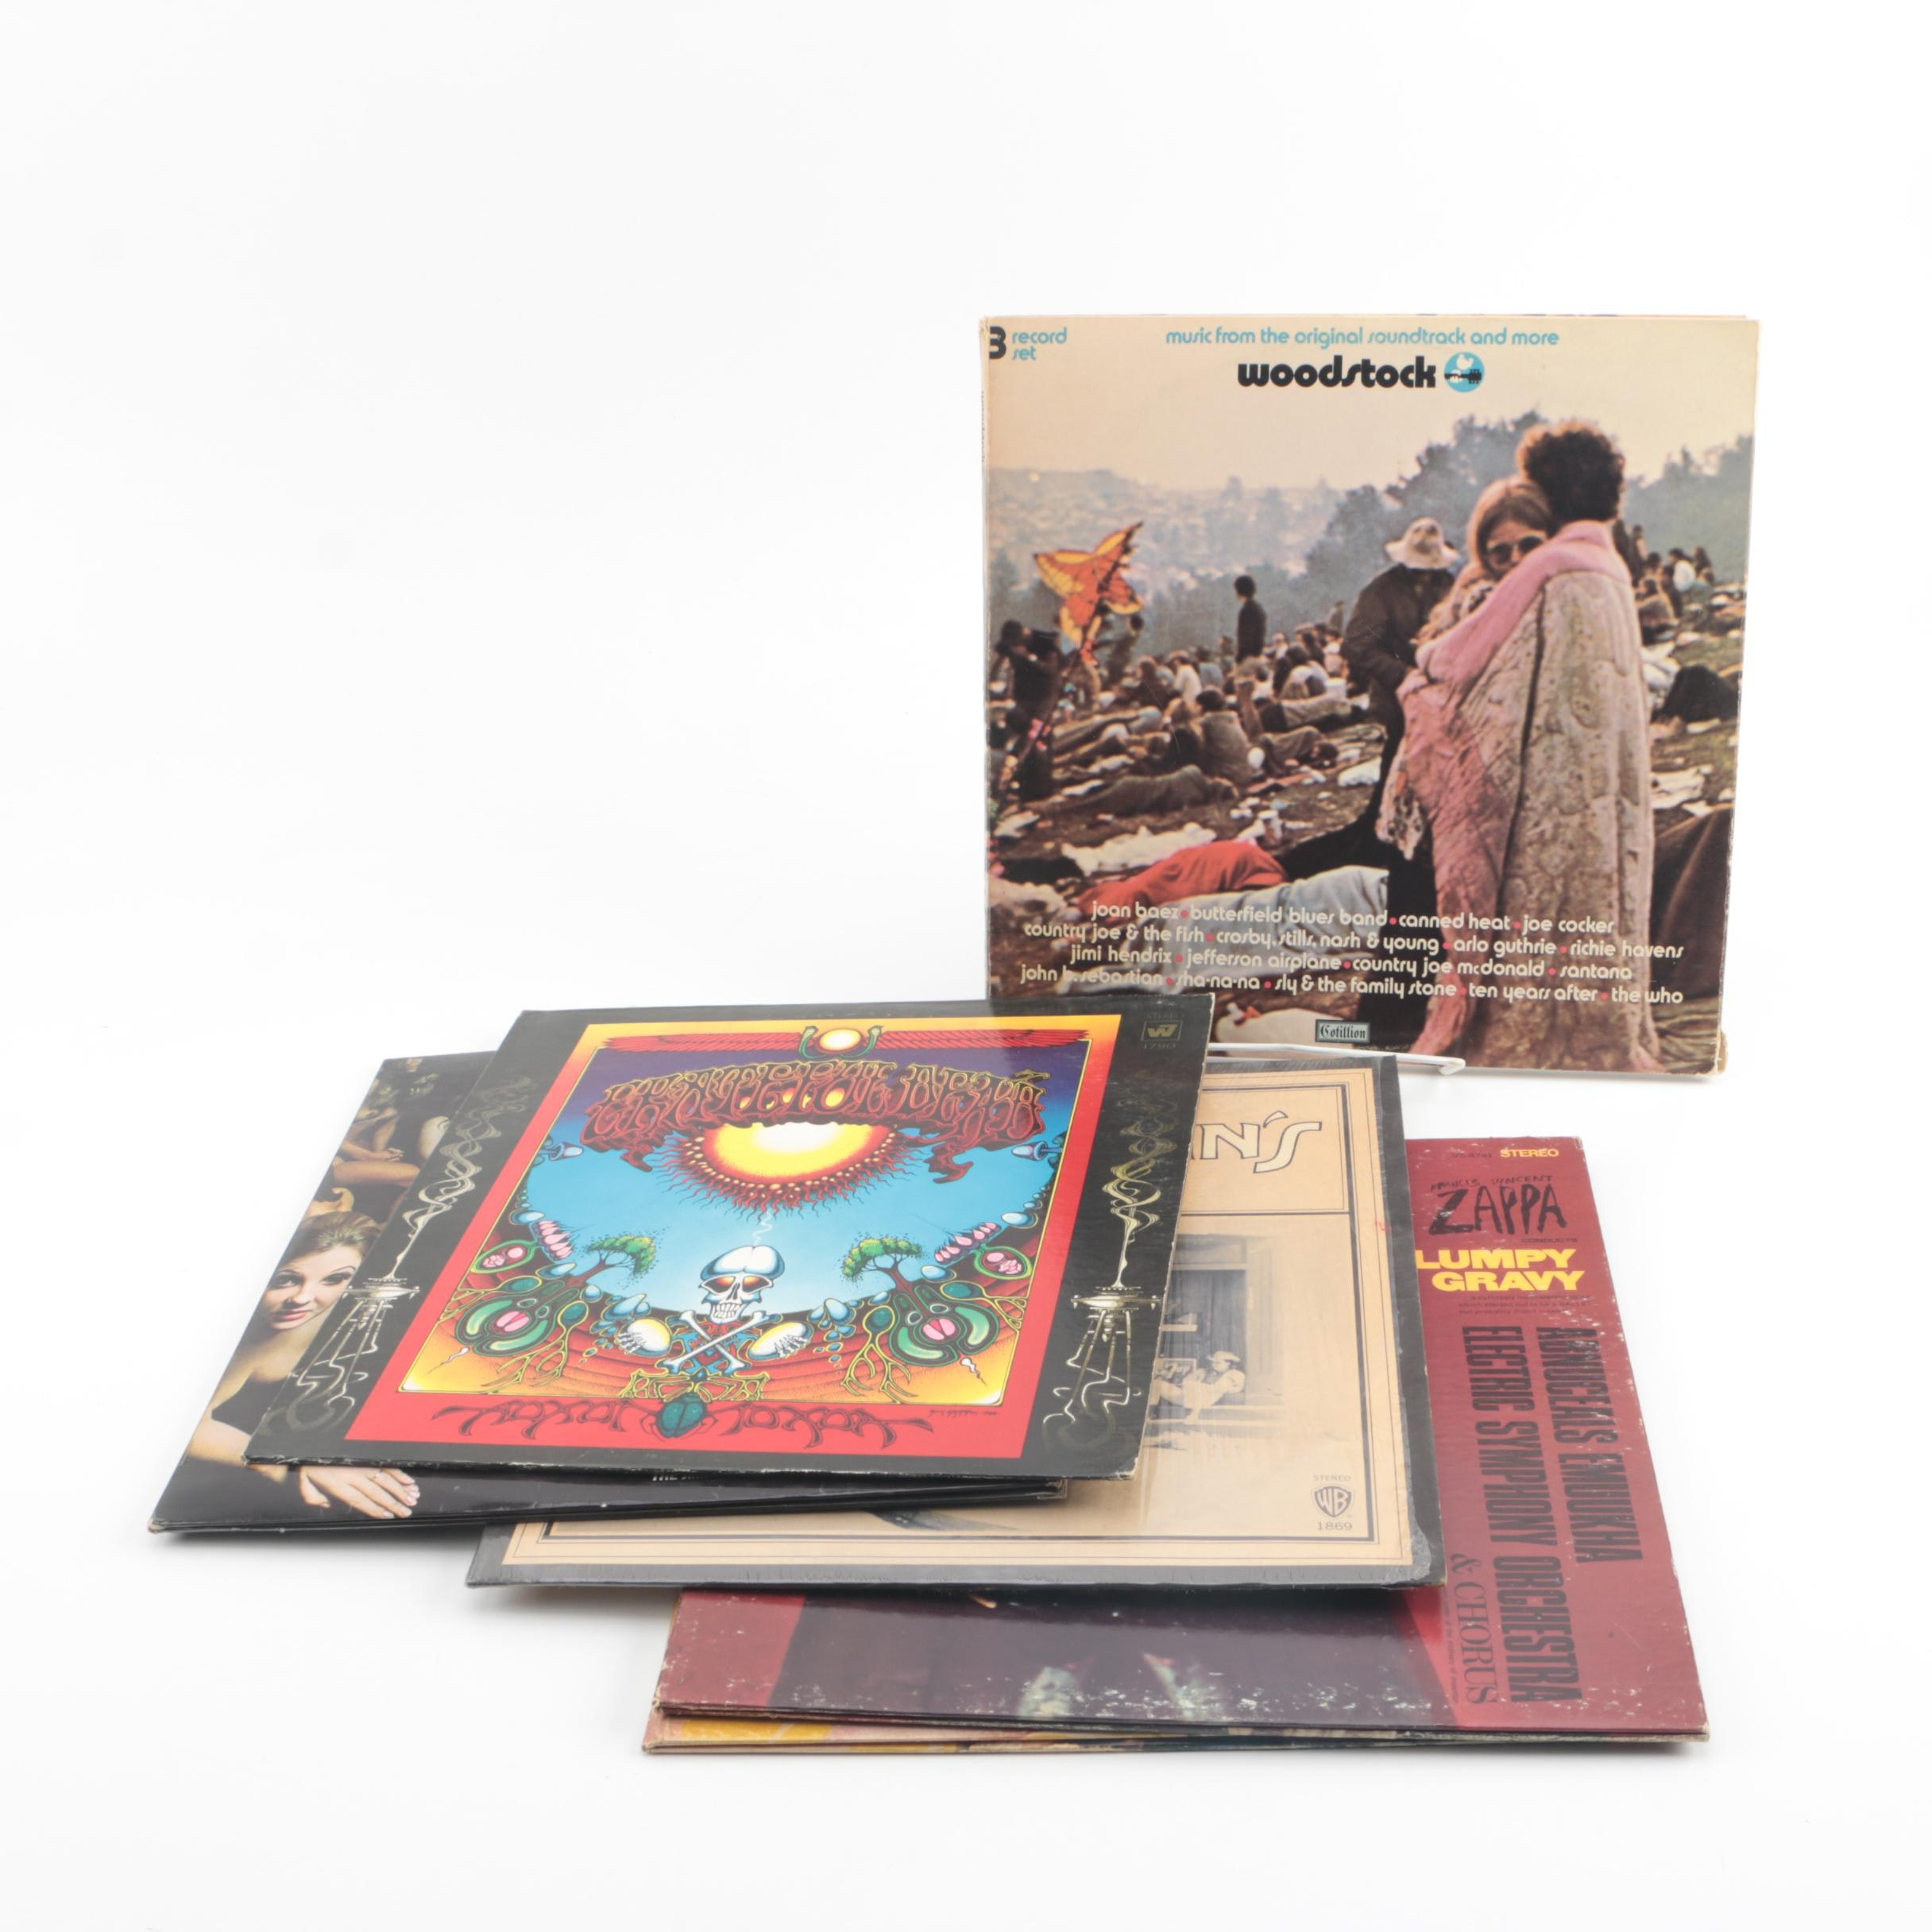 Vintage Classic Rock Records including Woodstock Soundtrack and Grateful Dead